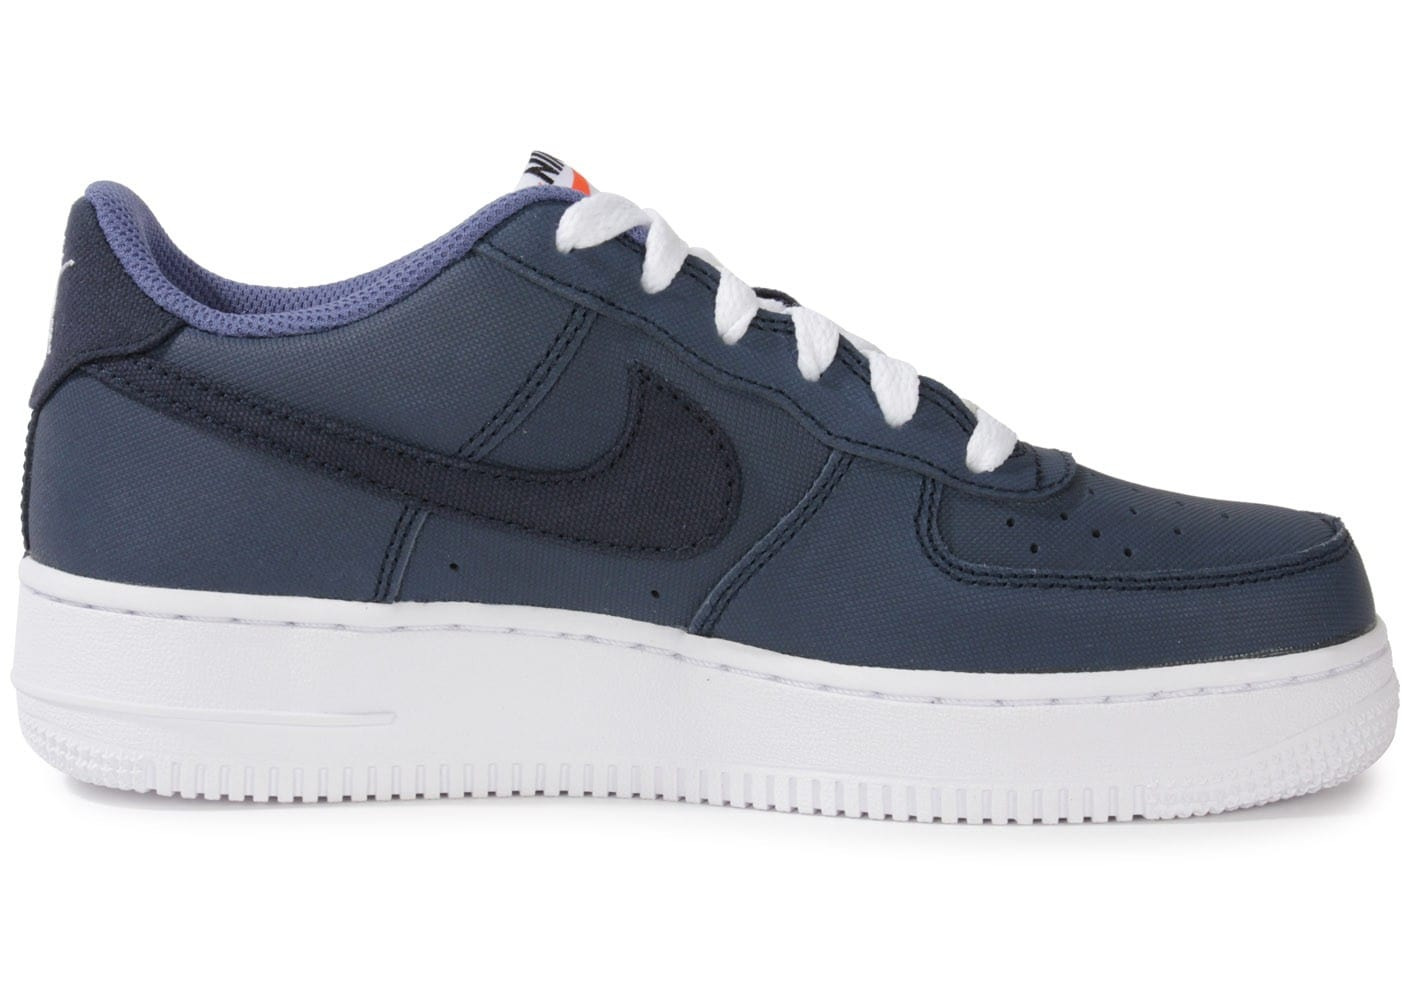 Nike Air Force 1 Low Suede Femme